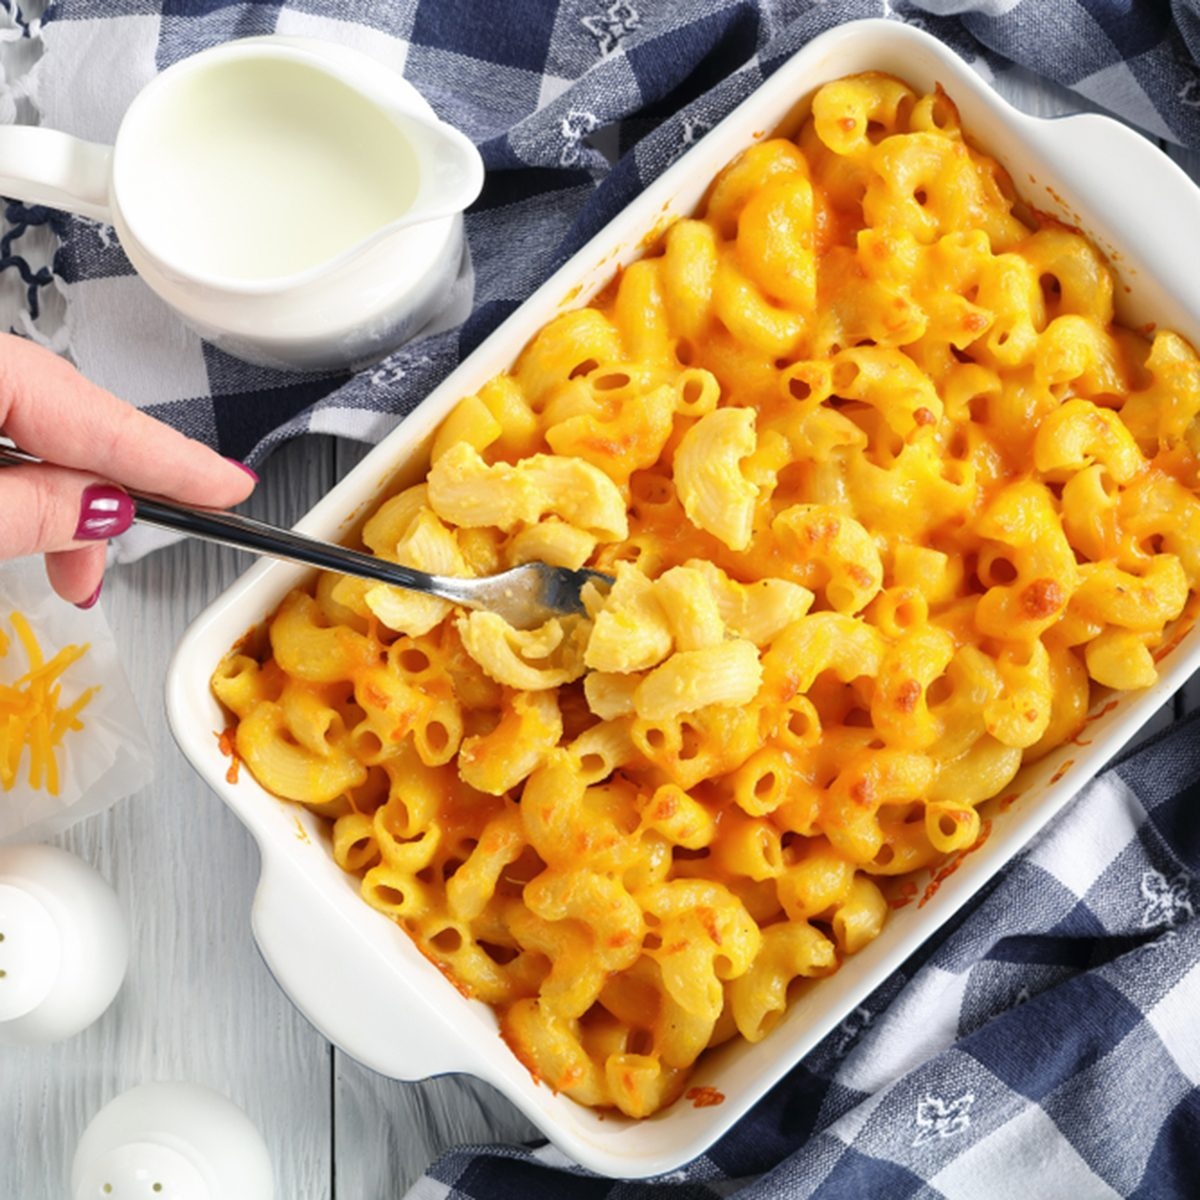 woman's hand is holding a fork with small portion of Mac and cheese or elbow pasta baked with cream and sharp cheddar cheese sauce in dish,